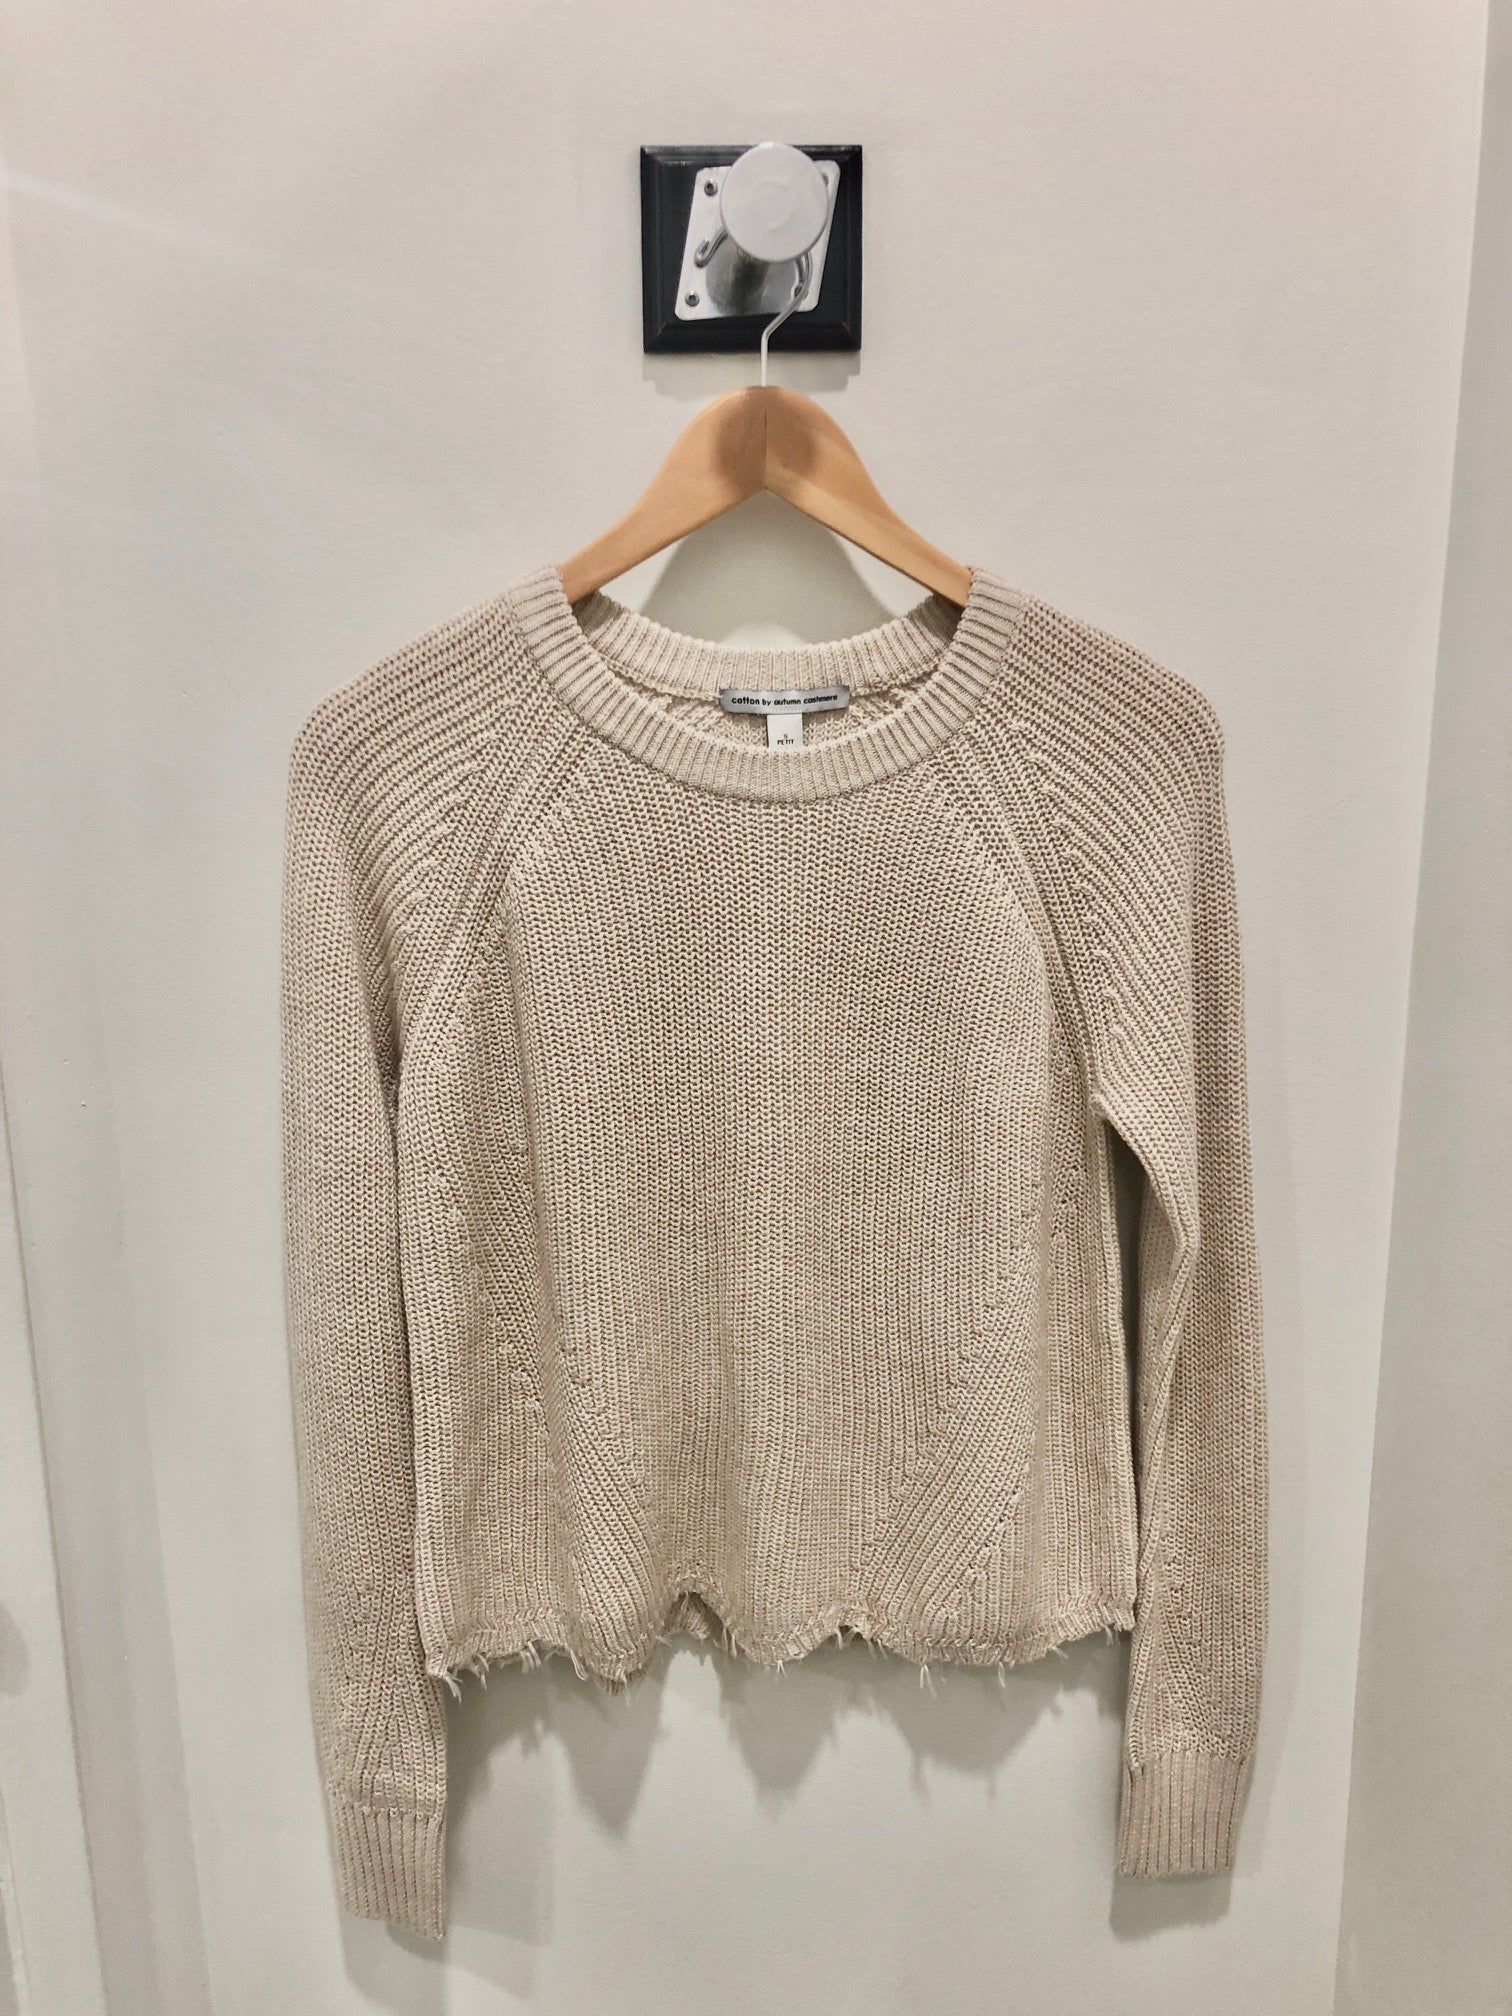 autumn cashmere cotton distressed shaker sweater in natural